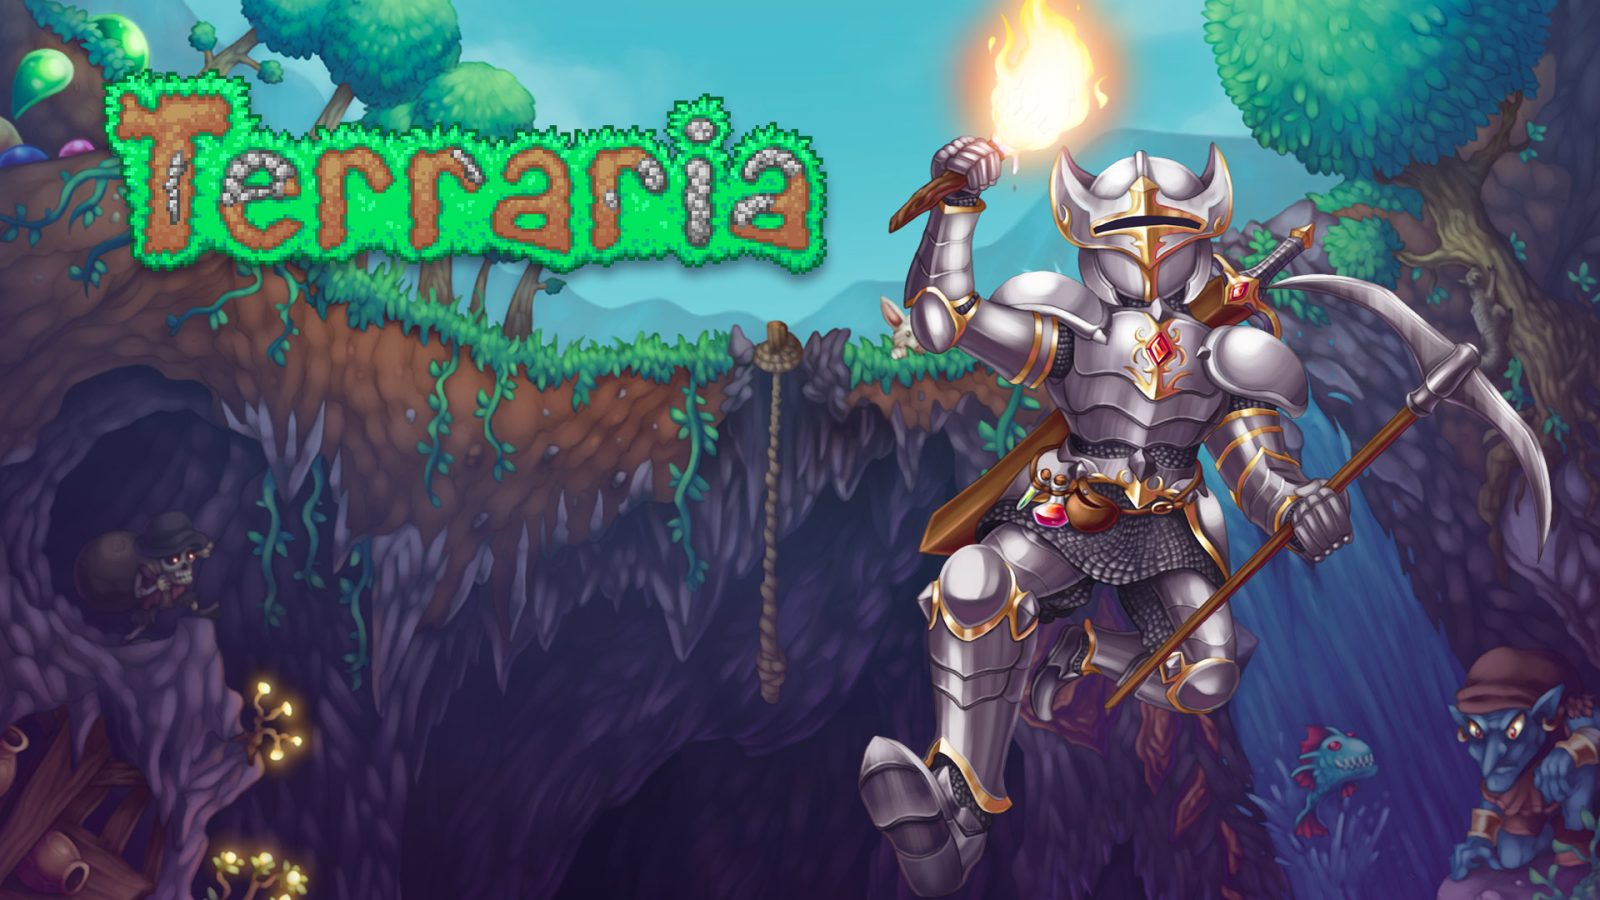 Terraria Stadia port canceled following developer trouble - 9to5Google